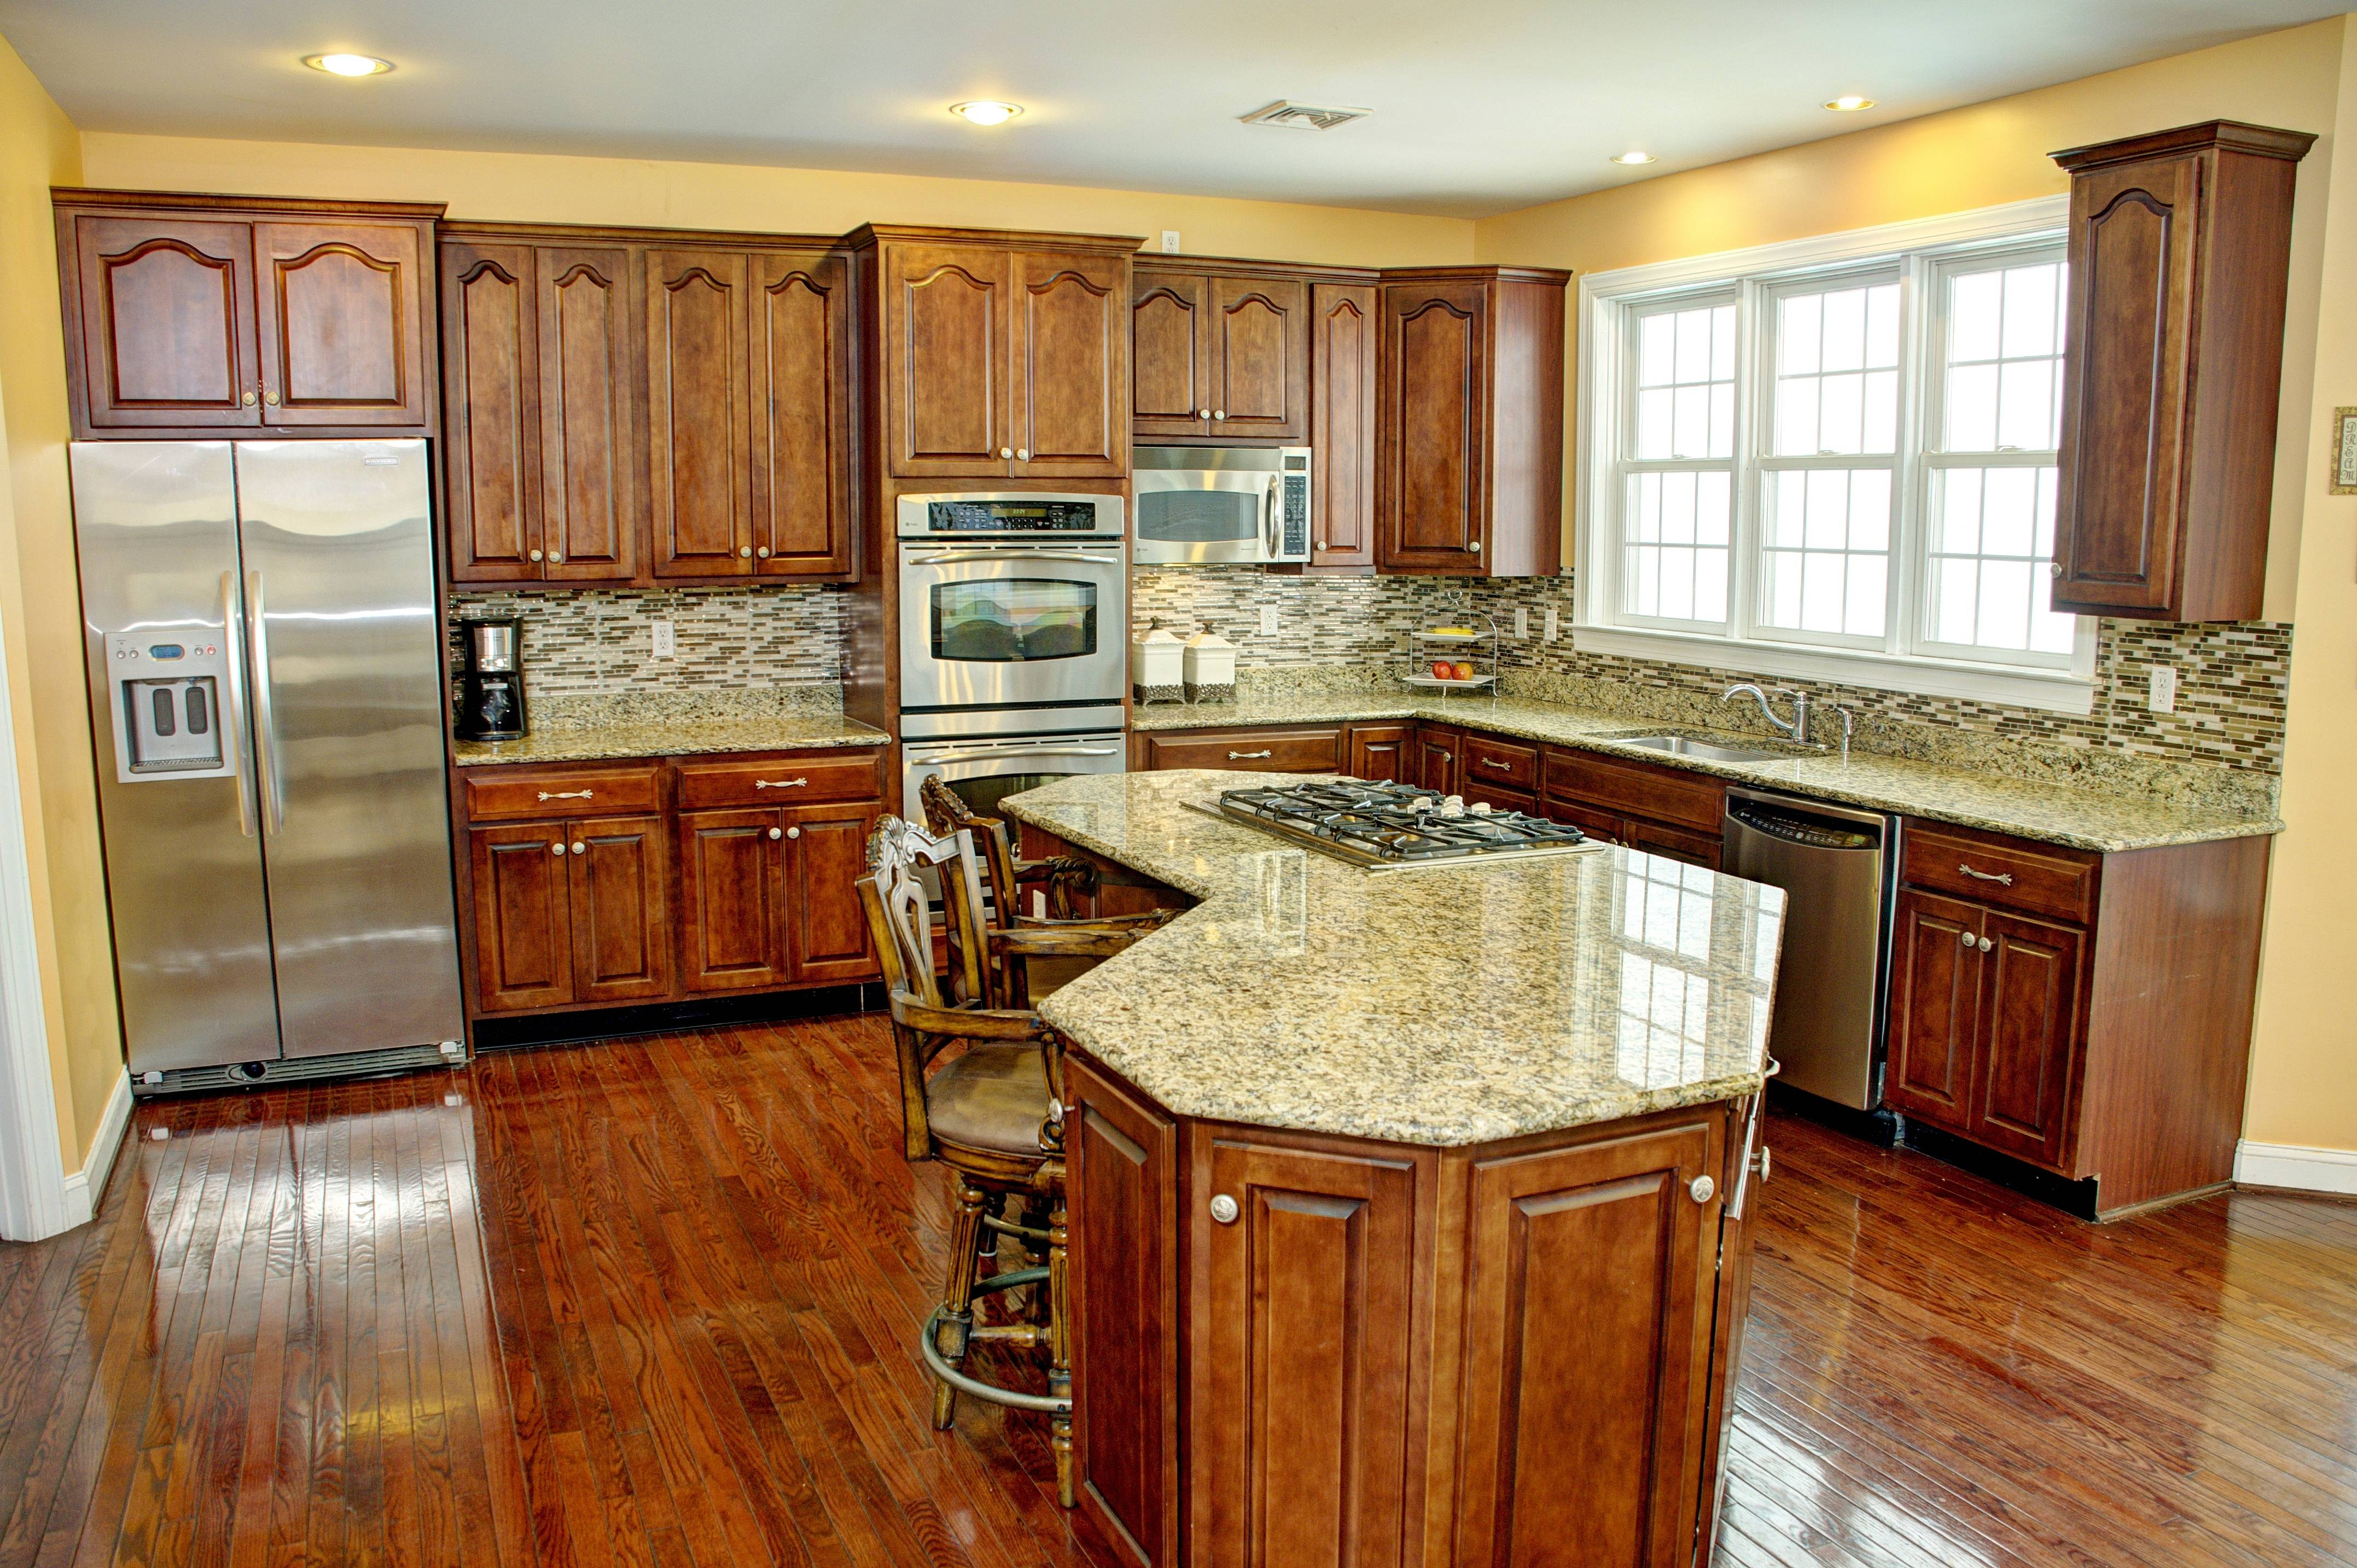 lederach singles With point2 homes, you can easily browse through meadow glen at skippack - lederach crossing, schwenksville, pa single family homes for sale, townhouses, condos and commercial properties, and quickly get a general perspective on the real estate prices.